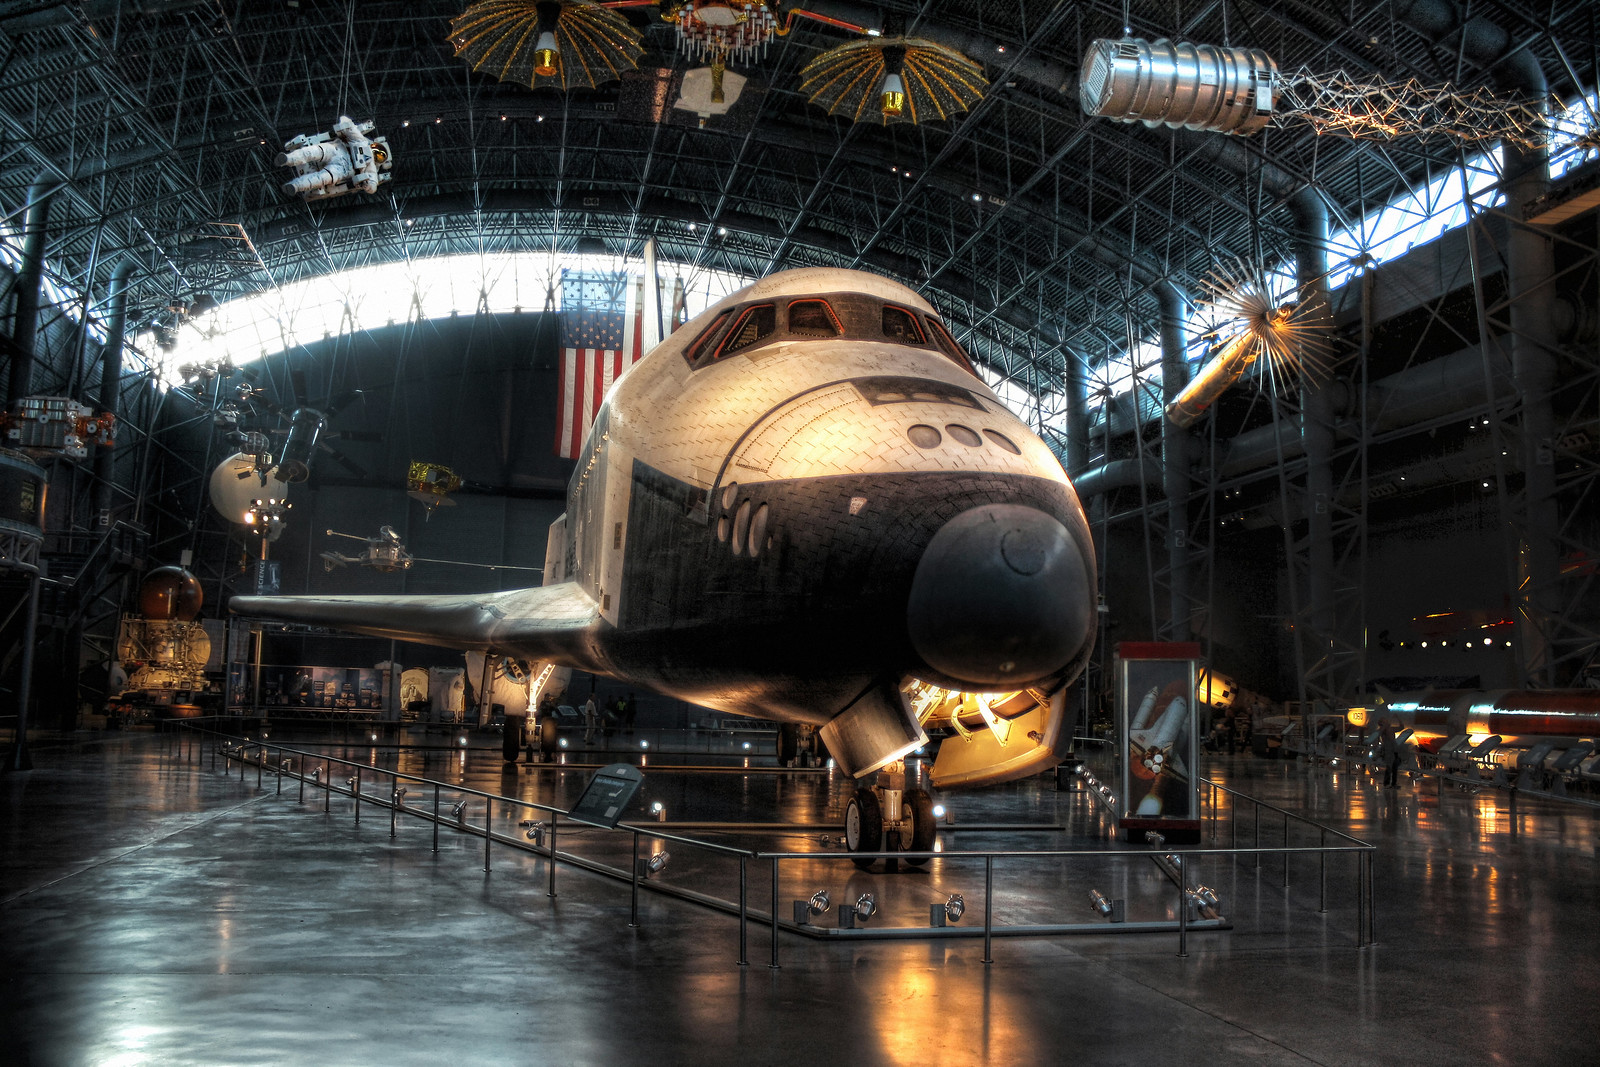 Chantilly VA - Steven F. Udvar-Hazy Center - Space Shuttle Enterprise OV-101 12, October 21, 2011 | © Courtesy of Daniel Mennerich/Flickr.